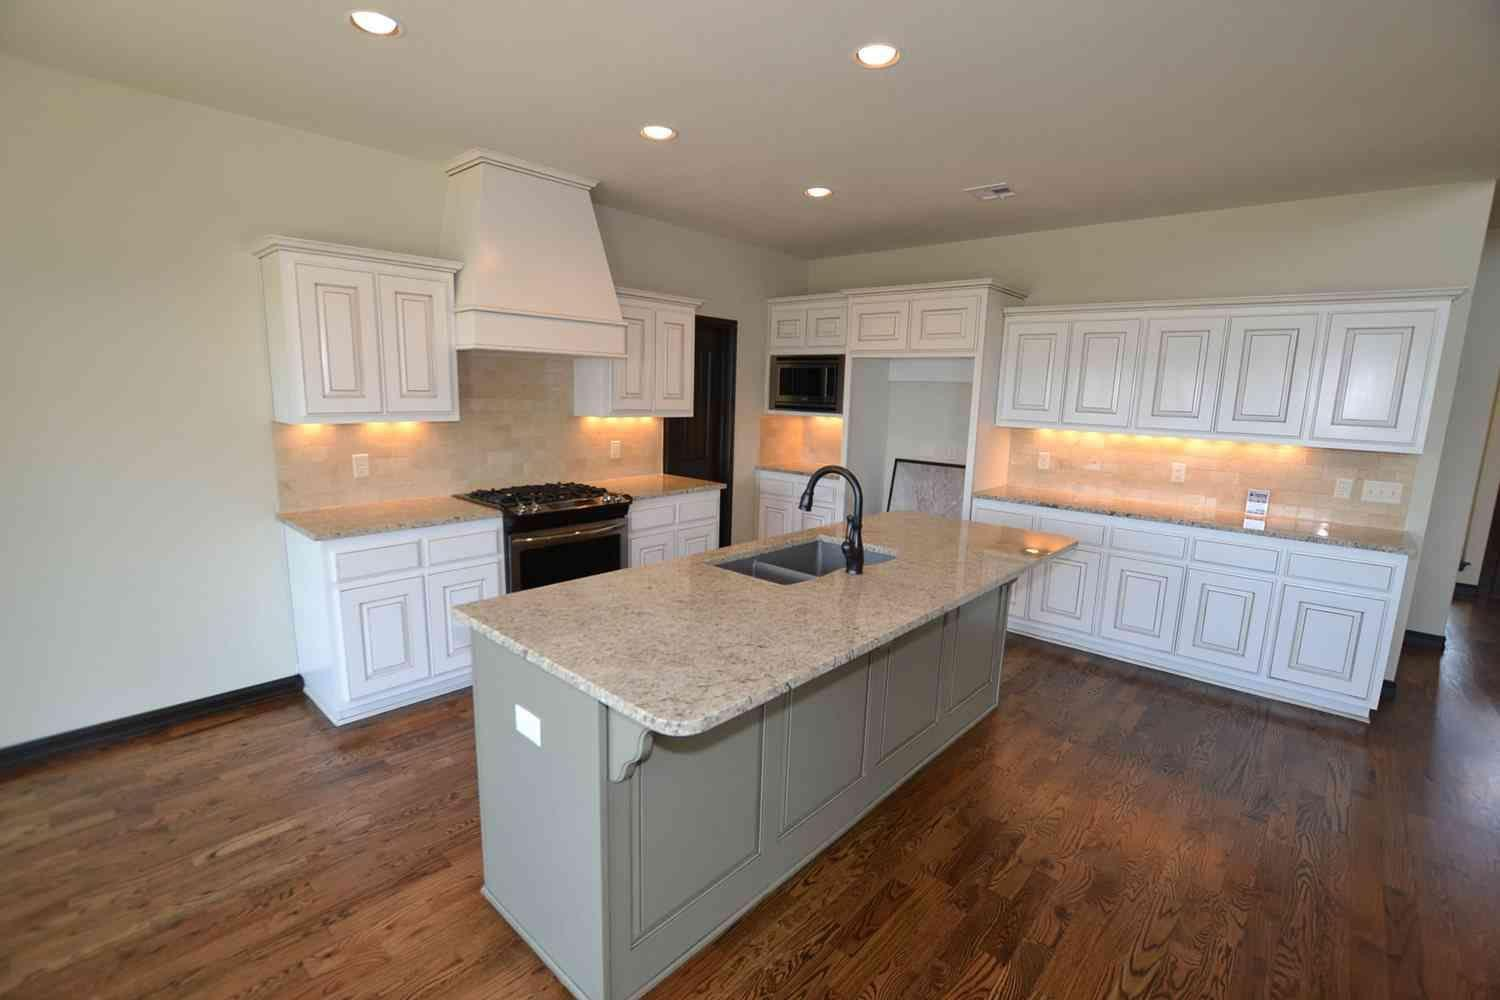 Kitchen featured in the Woodland IV By Concept Builders, Inc in Tulsa, OK